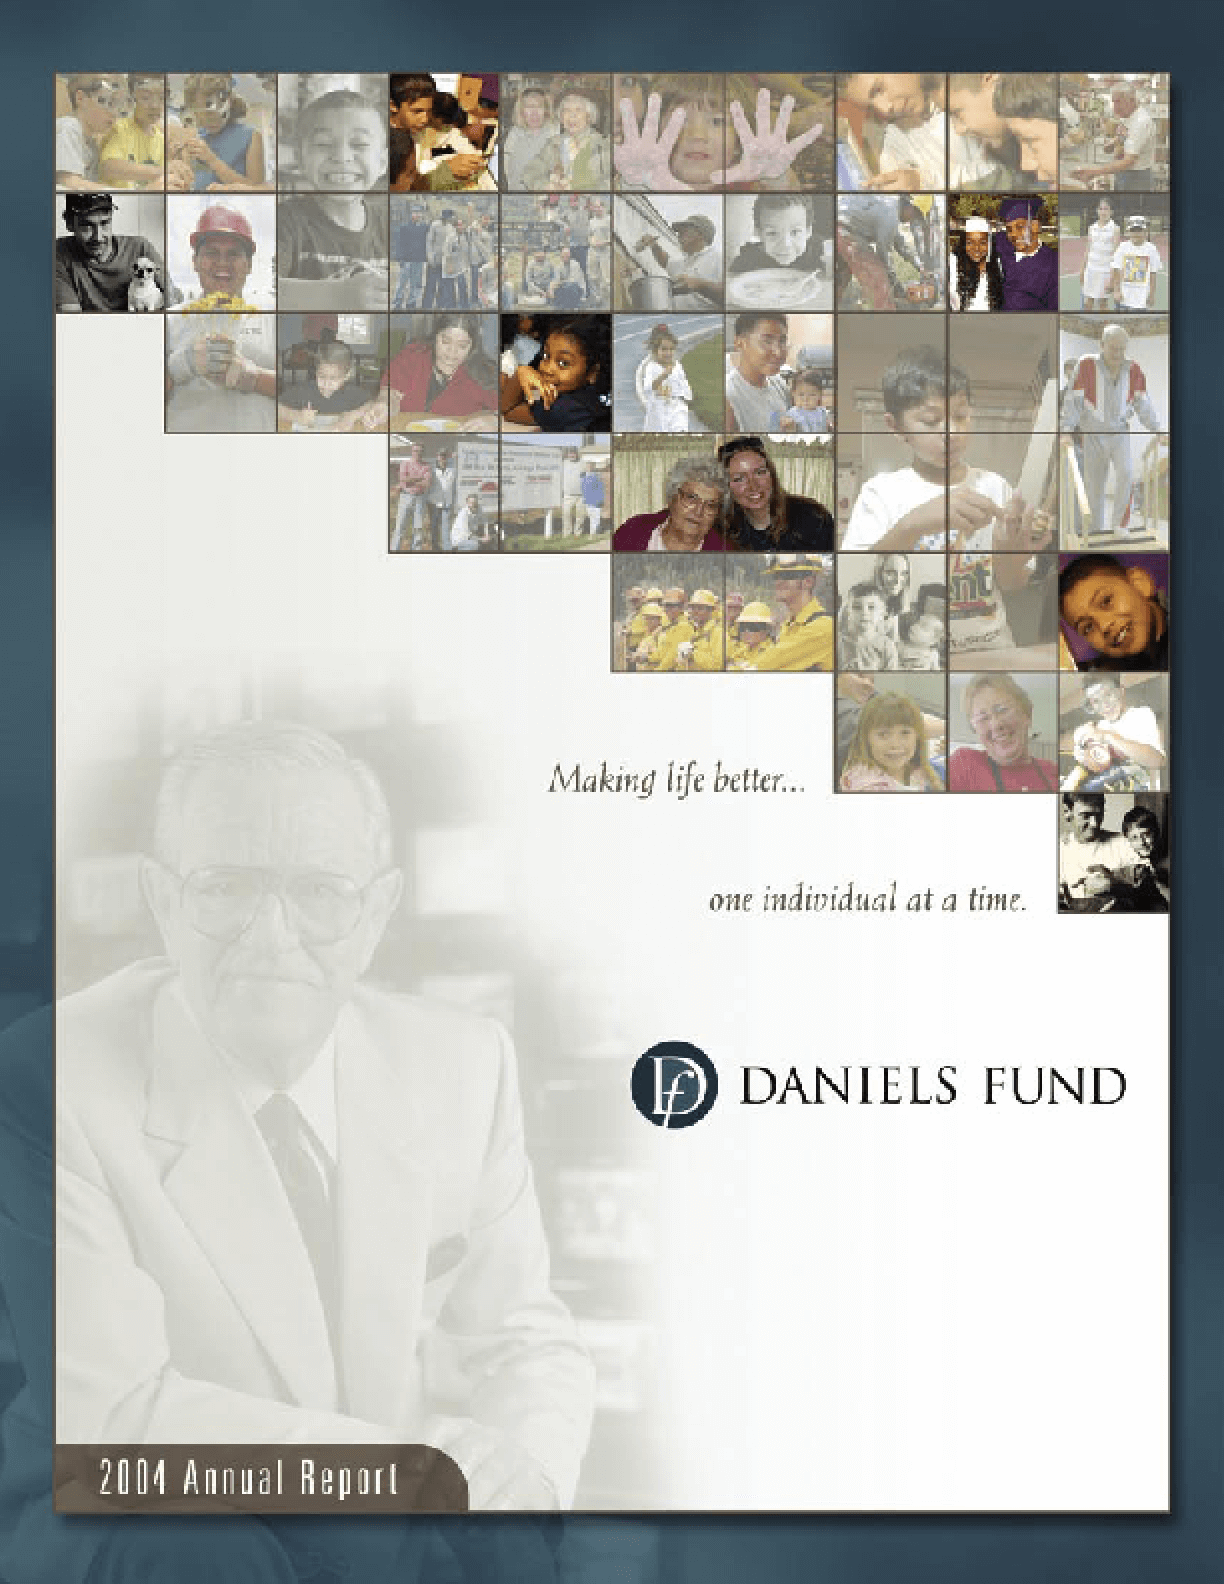 Daniels Fund - 2004 Annual Report